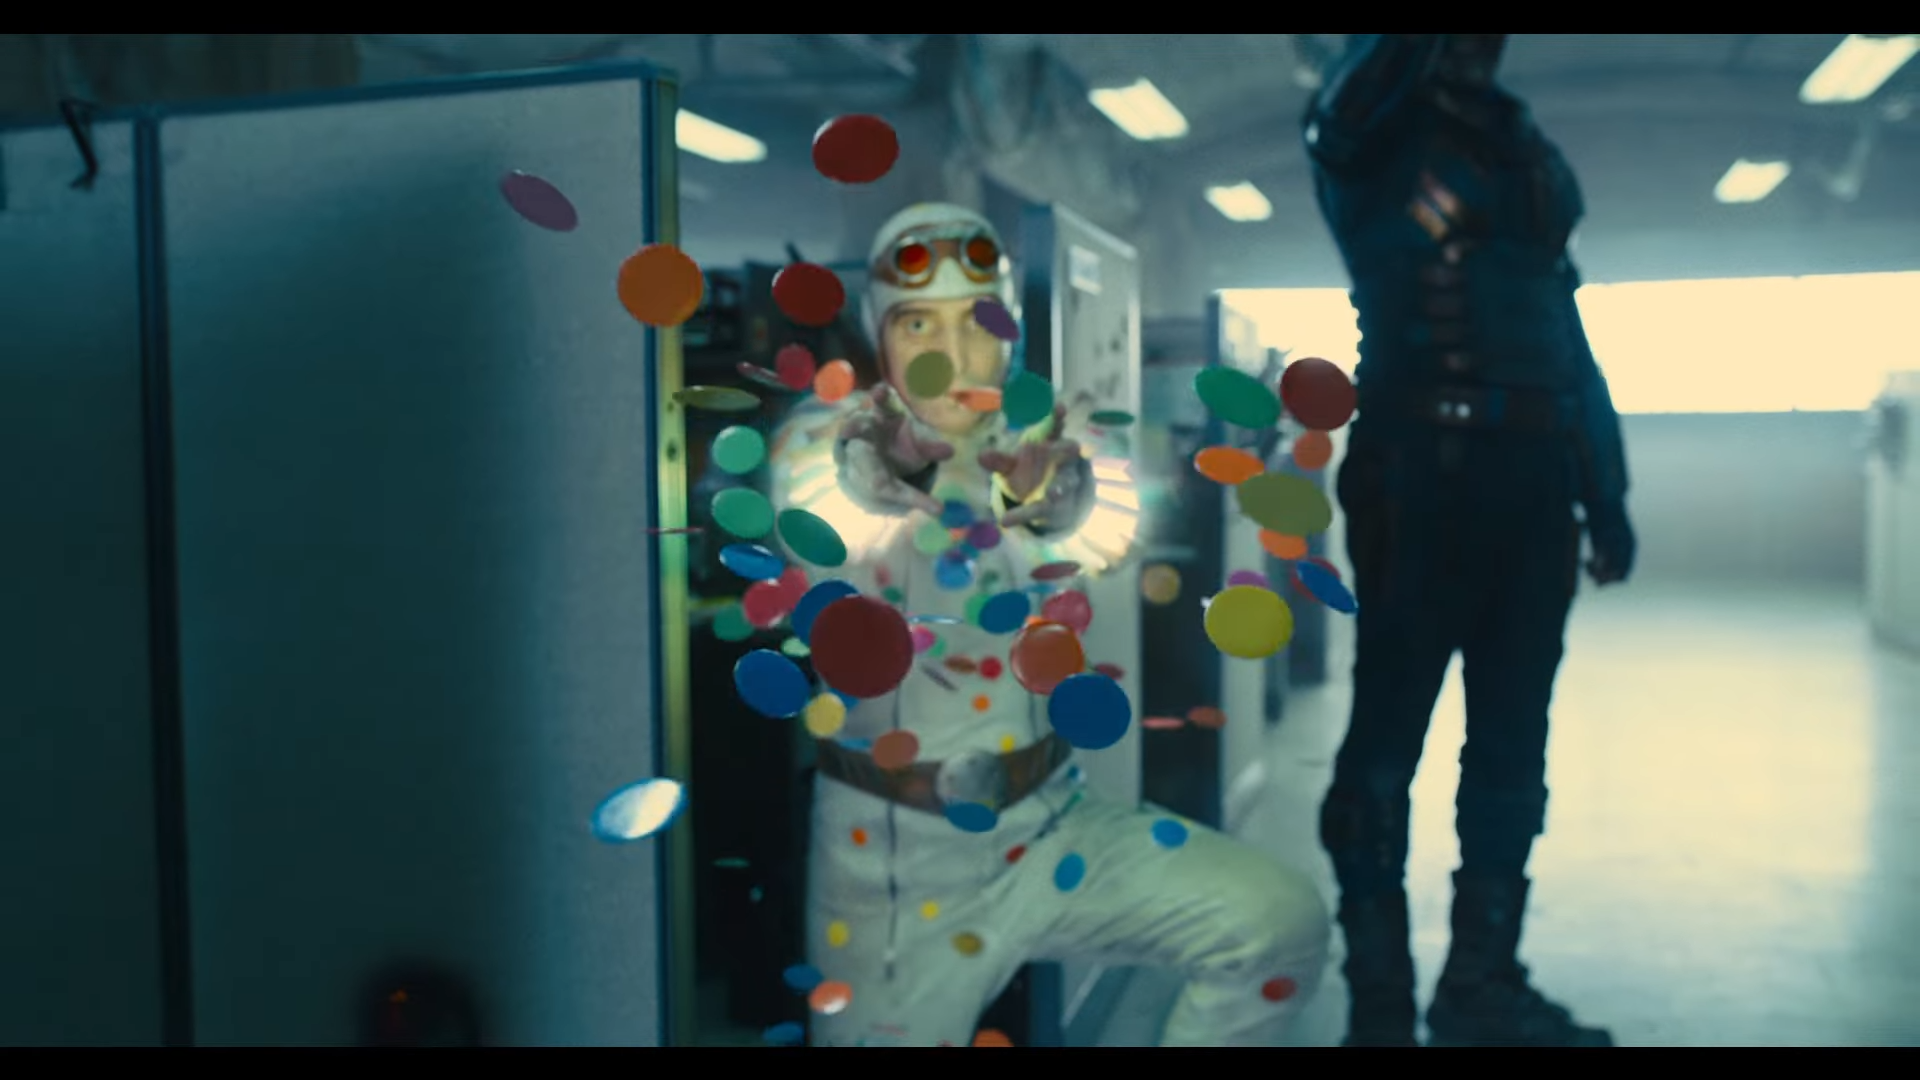 THE-SUICIDE-SQUAD-Rebellion-Trailer-1-16-screenshot-52